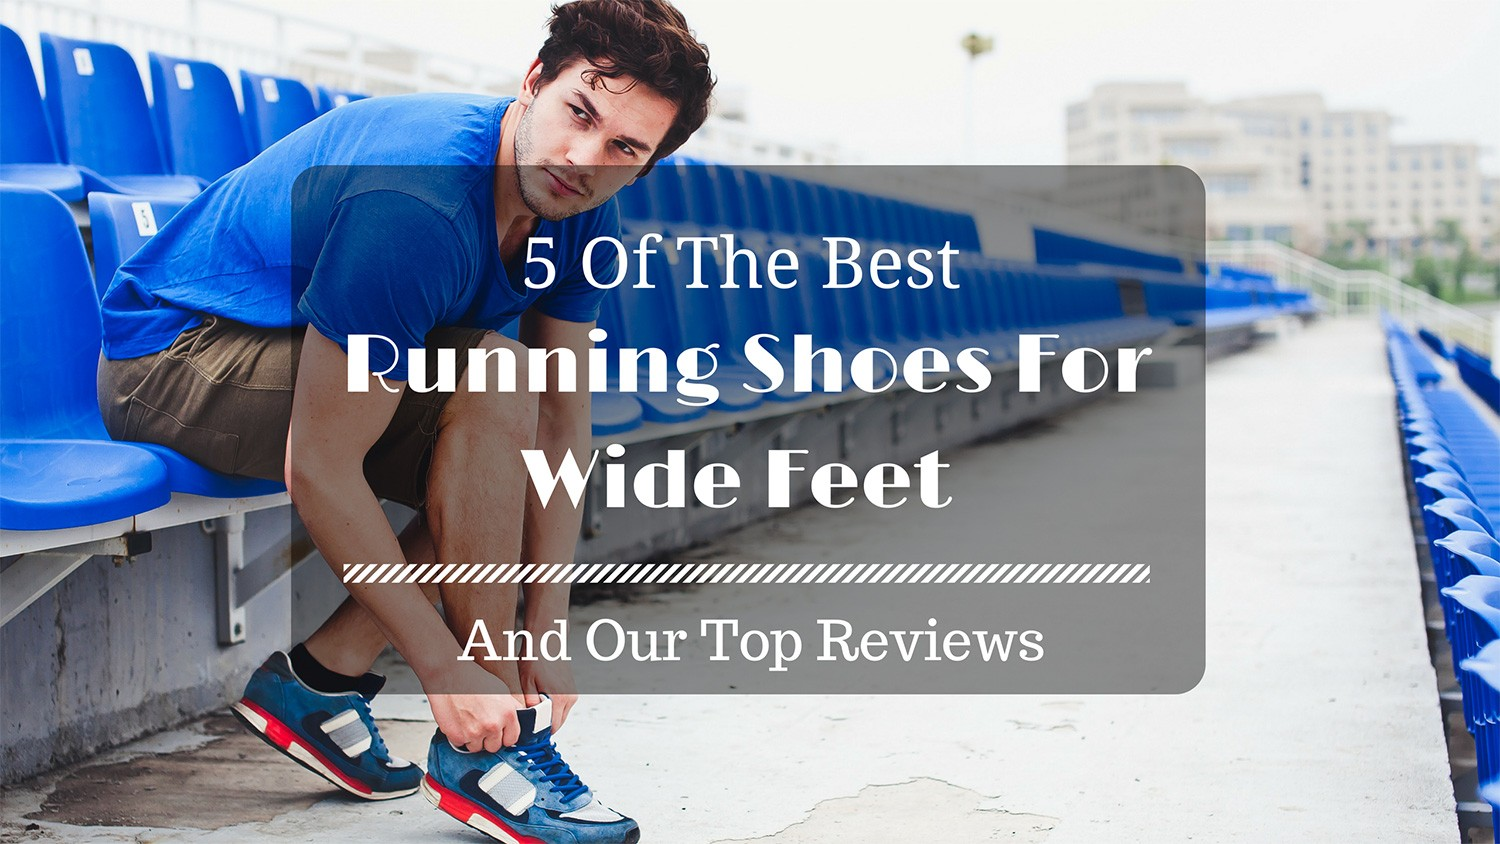 2017's List Of The Best Running Shoes For Wide Feet – All You Need To Know